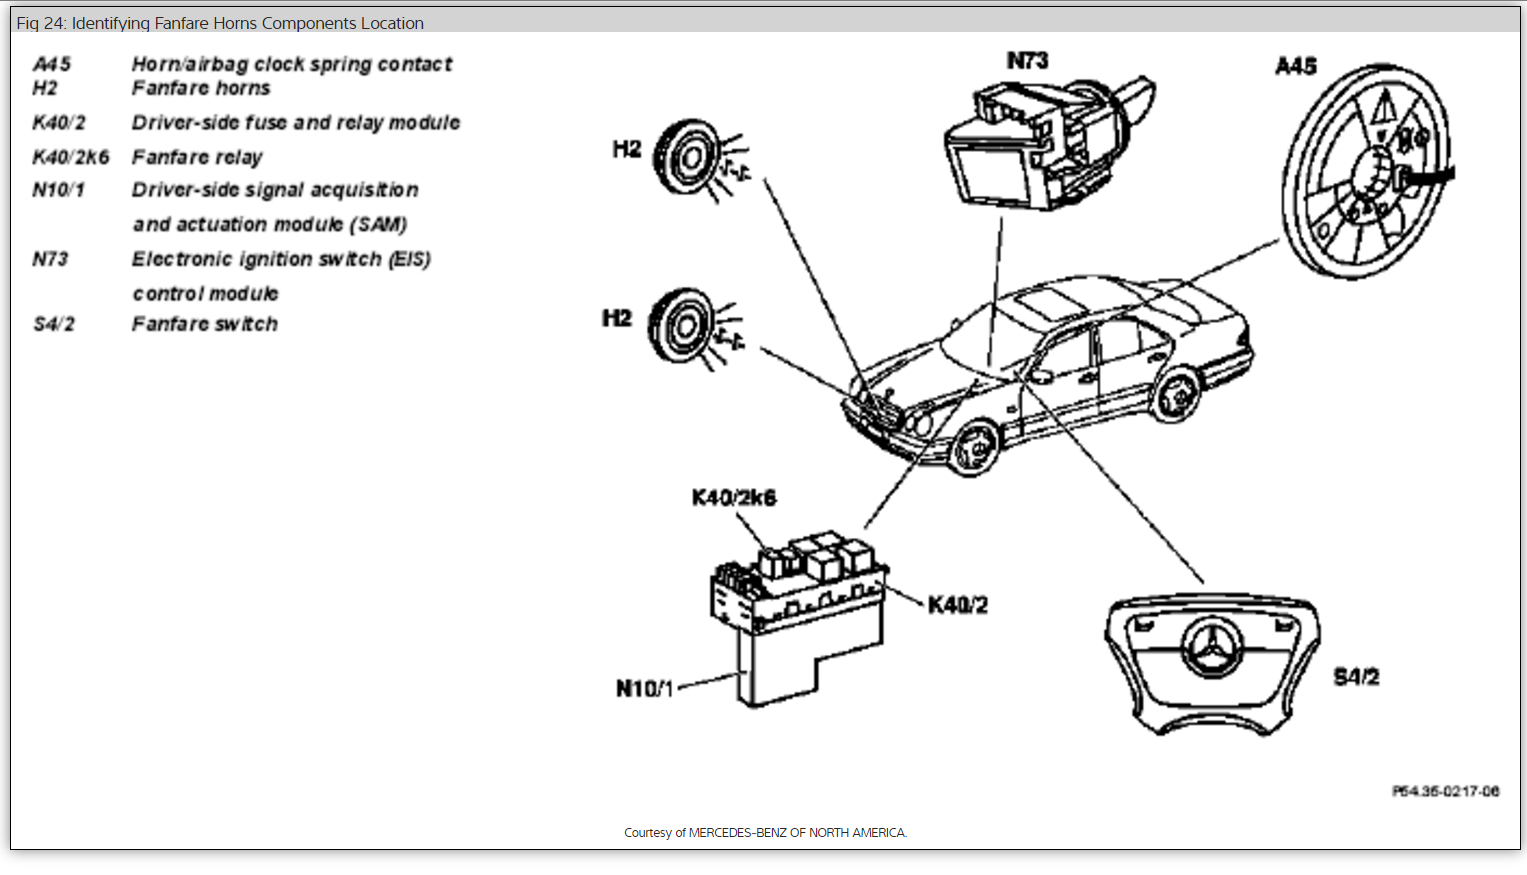 Benz S430 Fuse Diagram - Wiring Diagrams Clock Fuse Box Art on